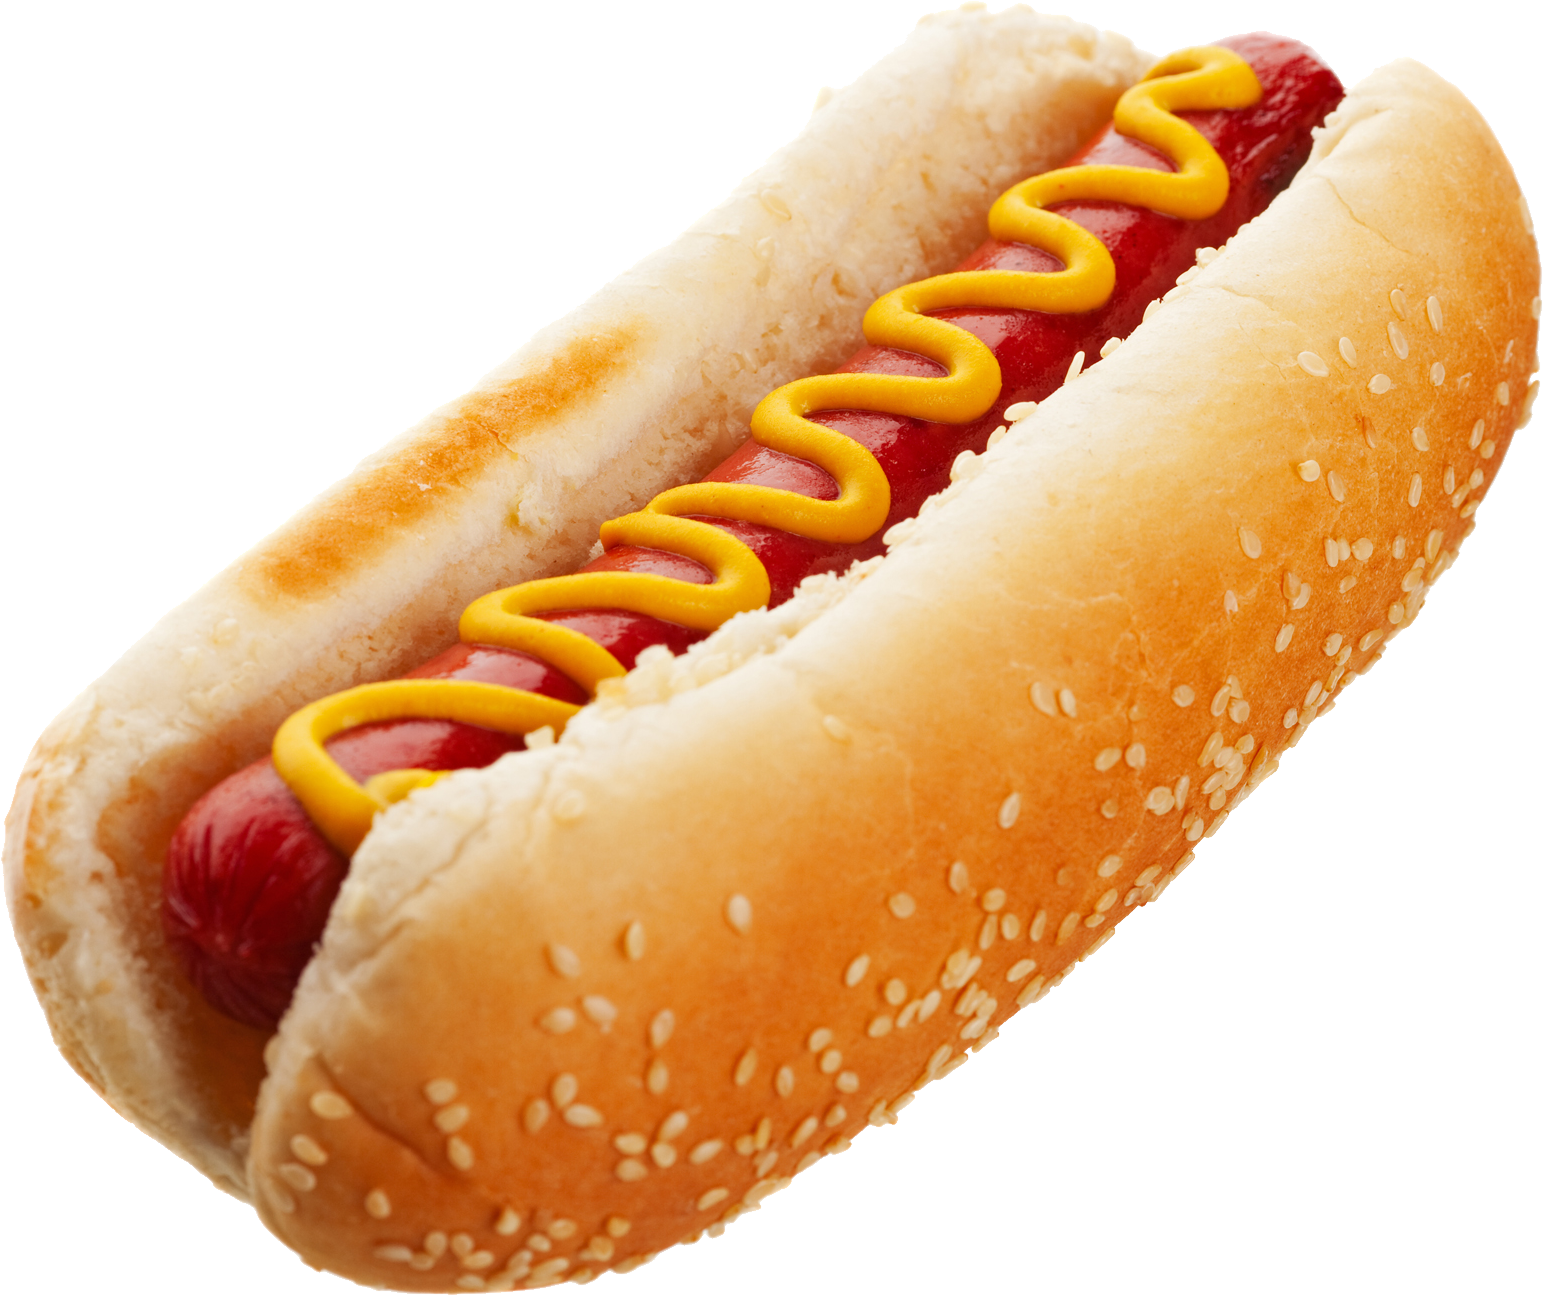 Clipart hot dog svg freeuse stock PNG Hot Dog Transparent Hot Dog.PNG Images. | PlusPNG svg freeuse stock